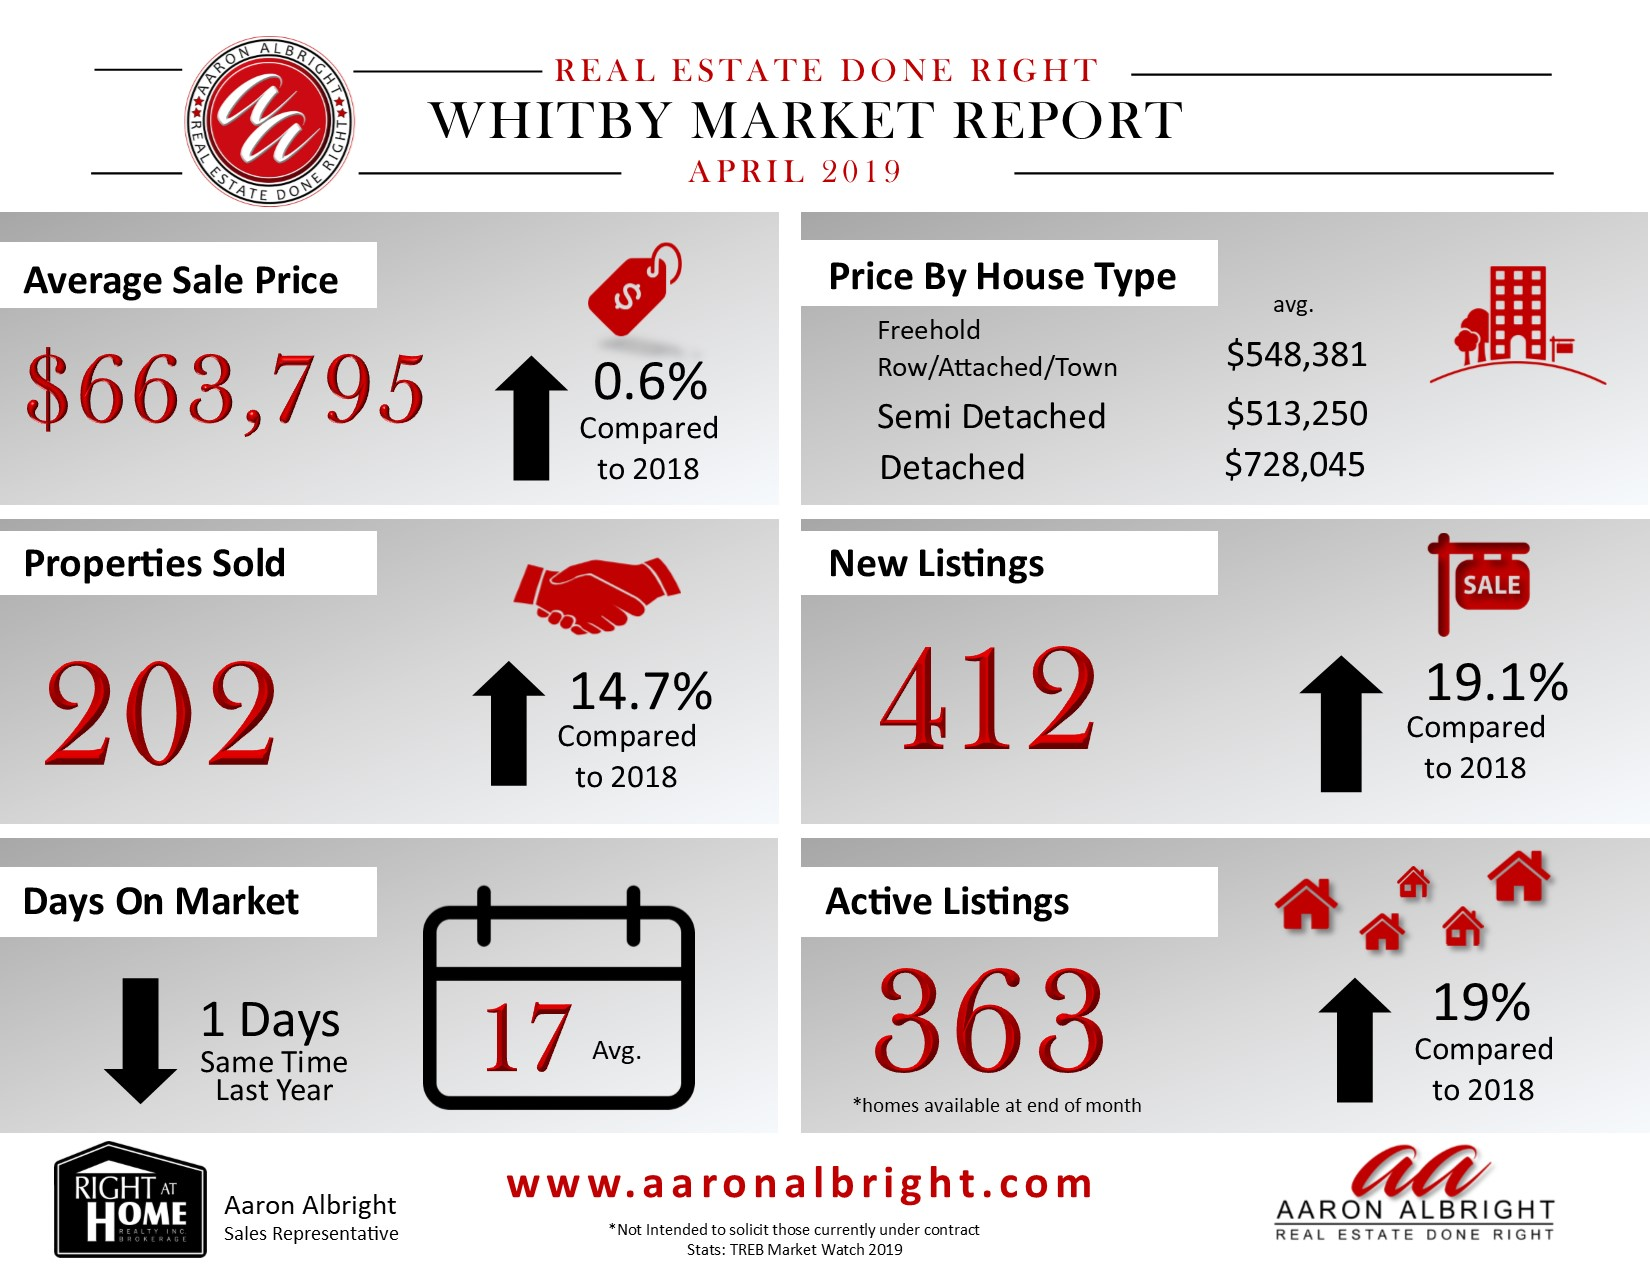 Whitby Real Estate Market Report April 2019